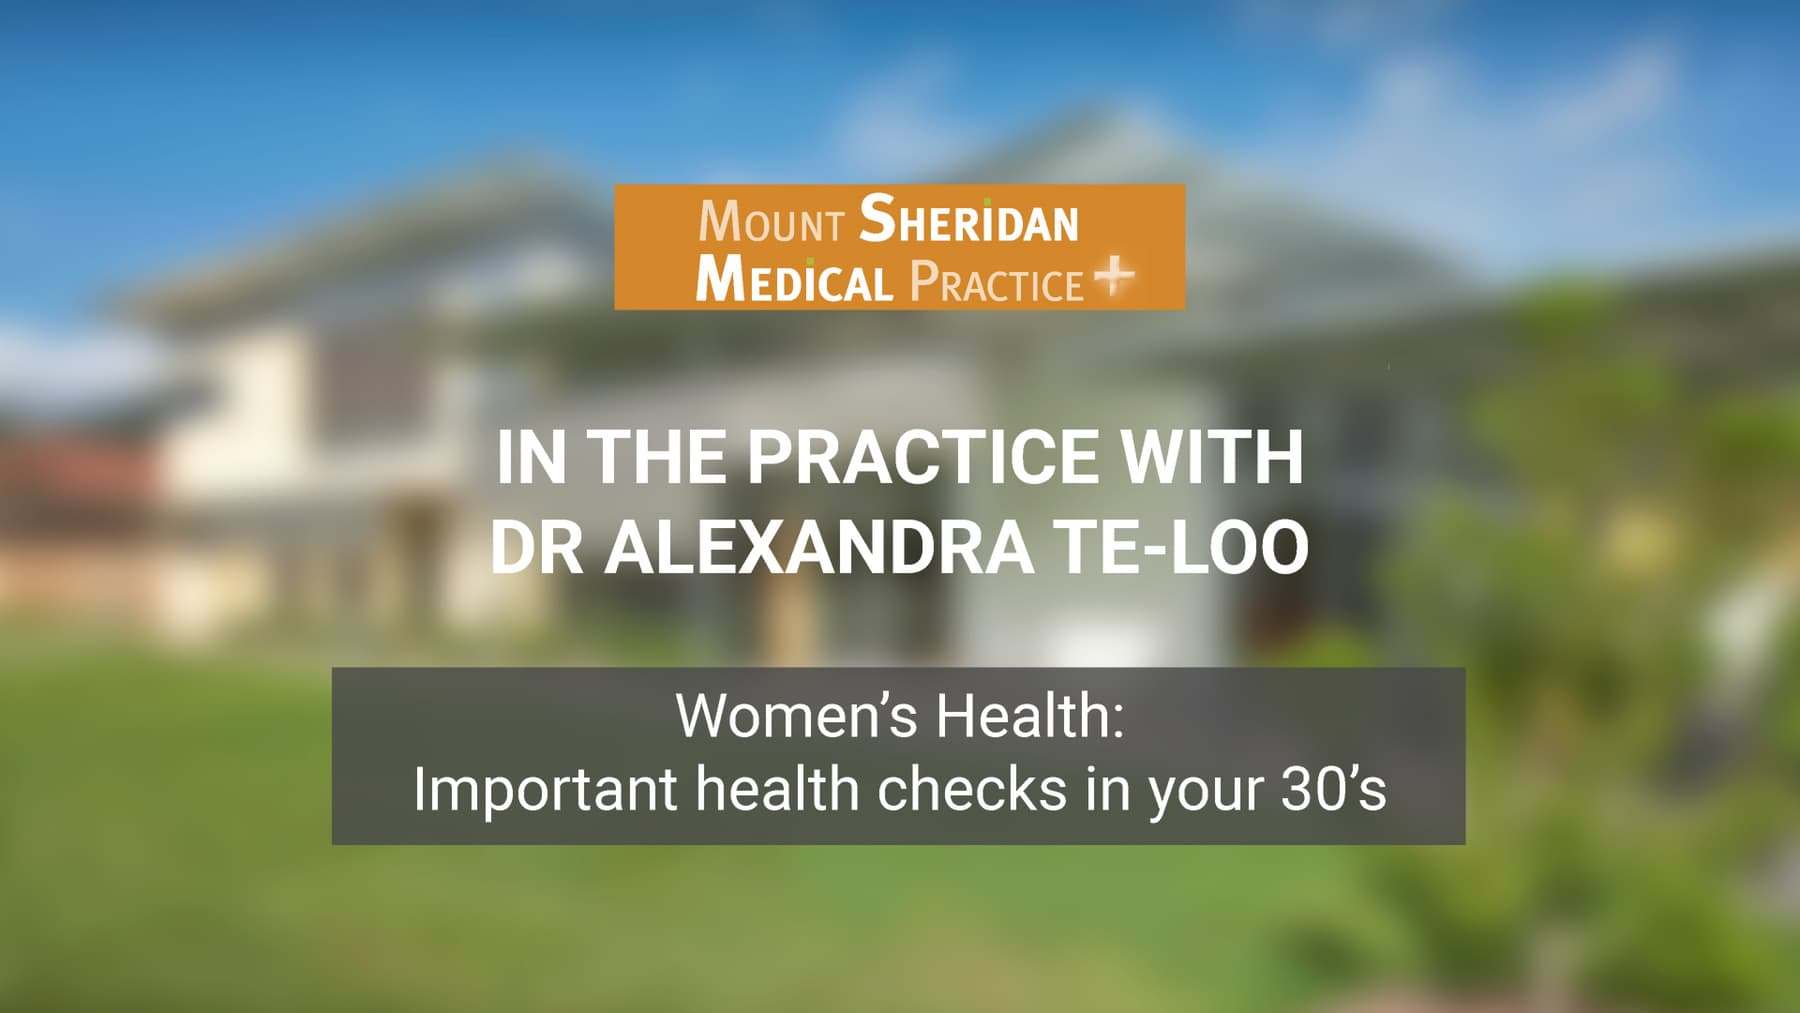 Women's Health: Important health checks in your 30's